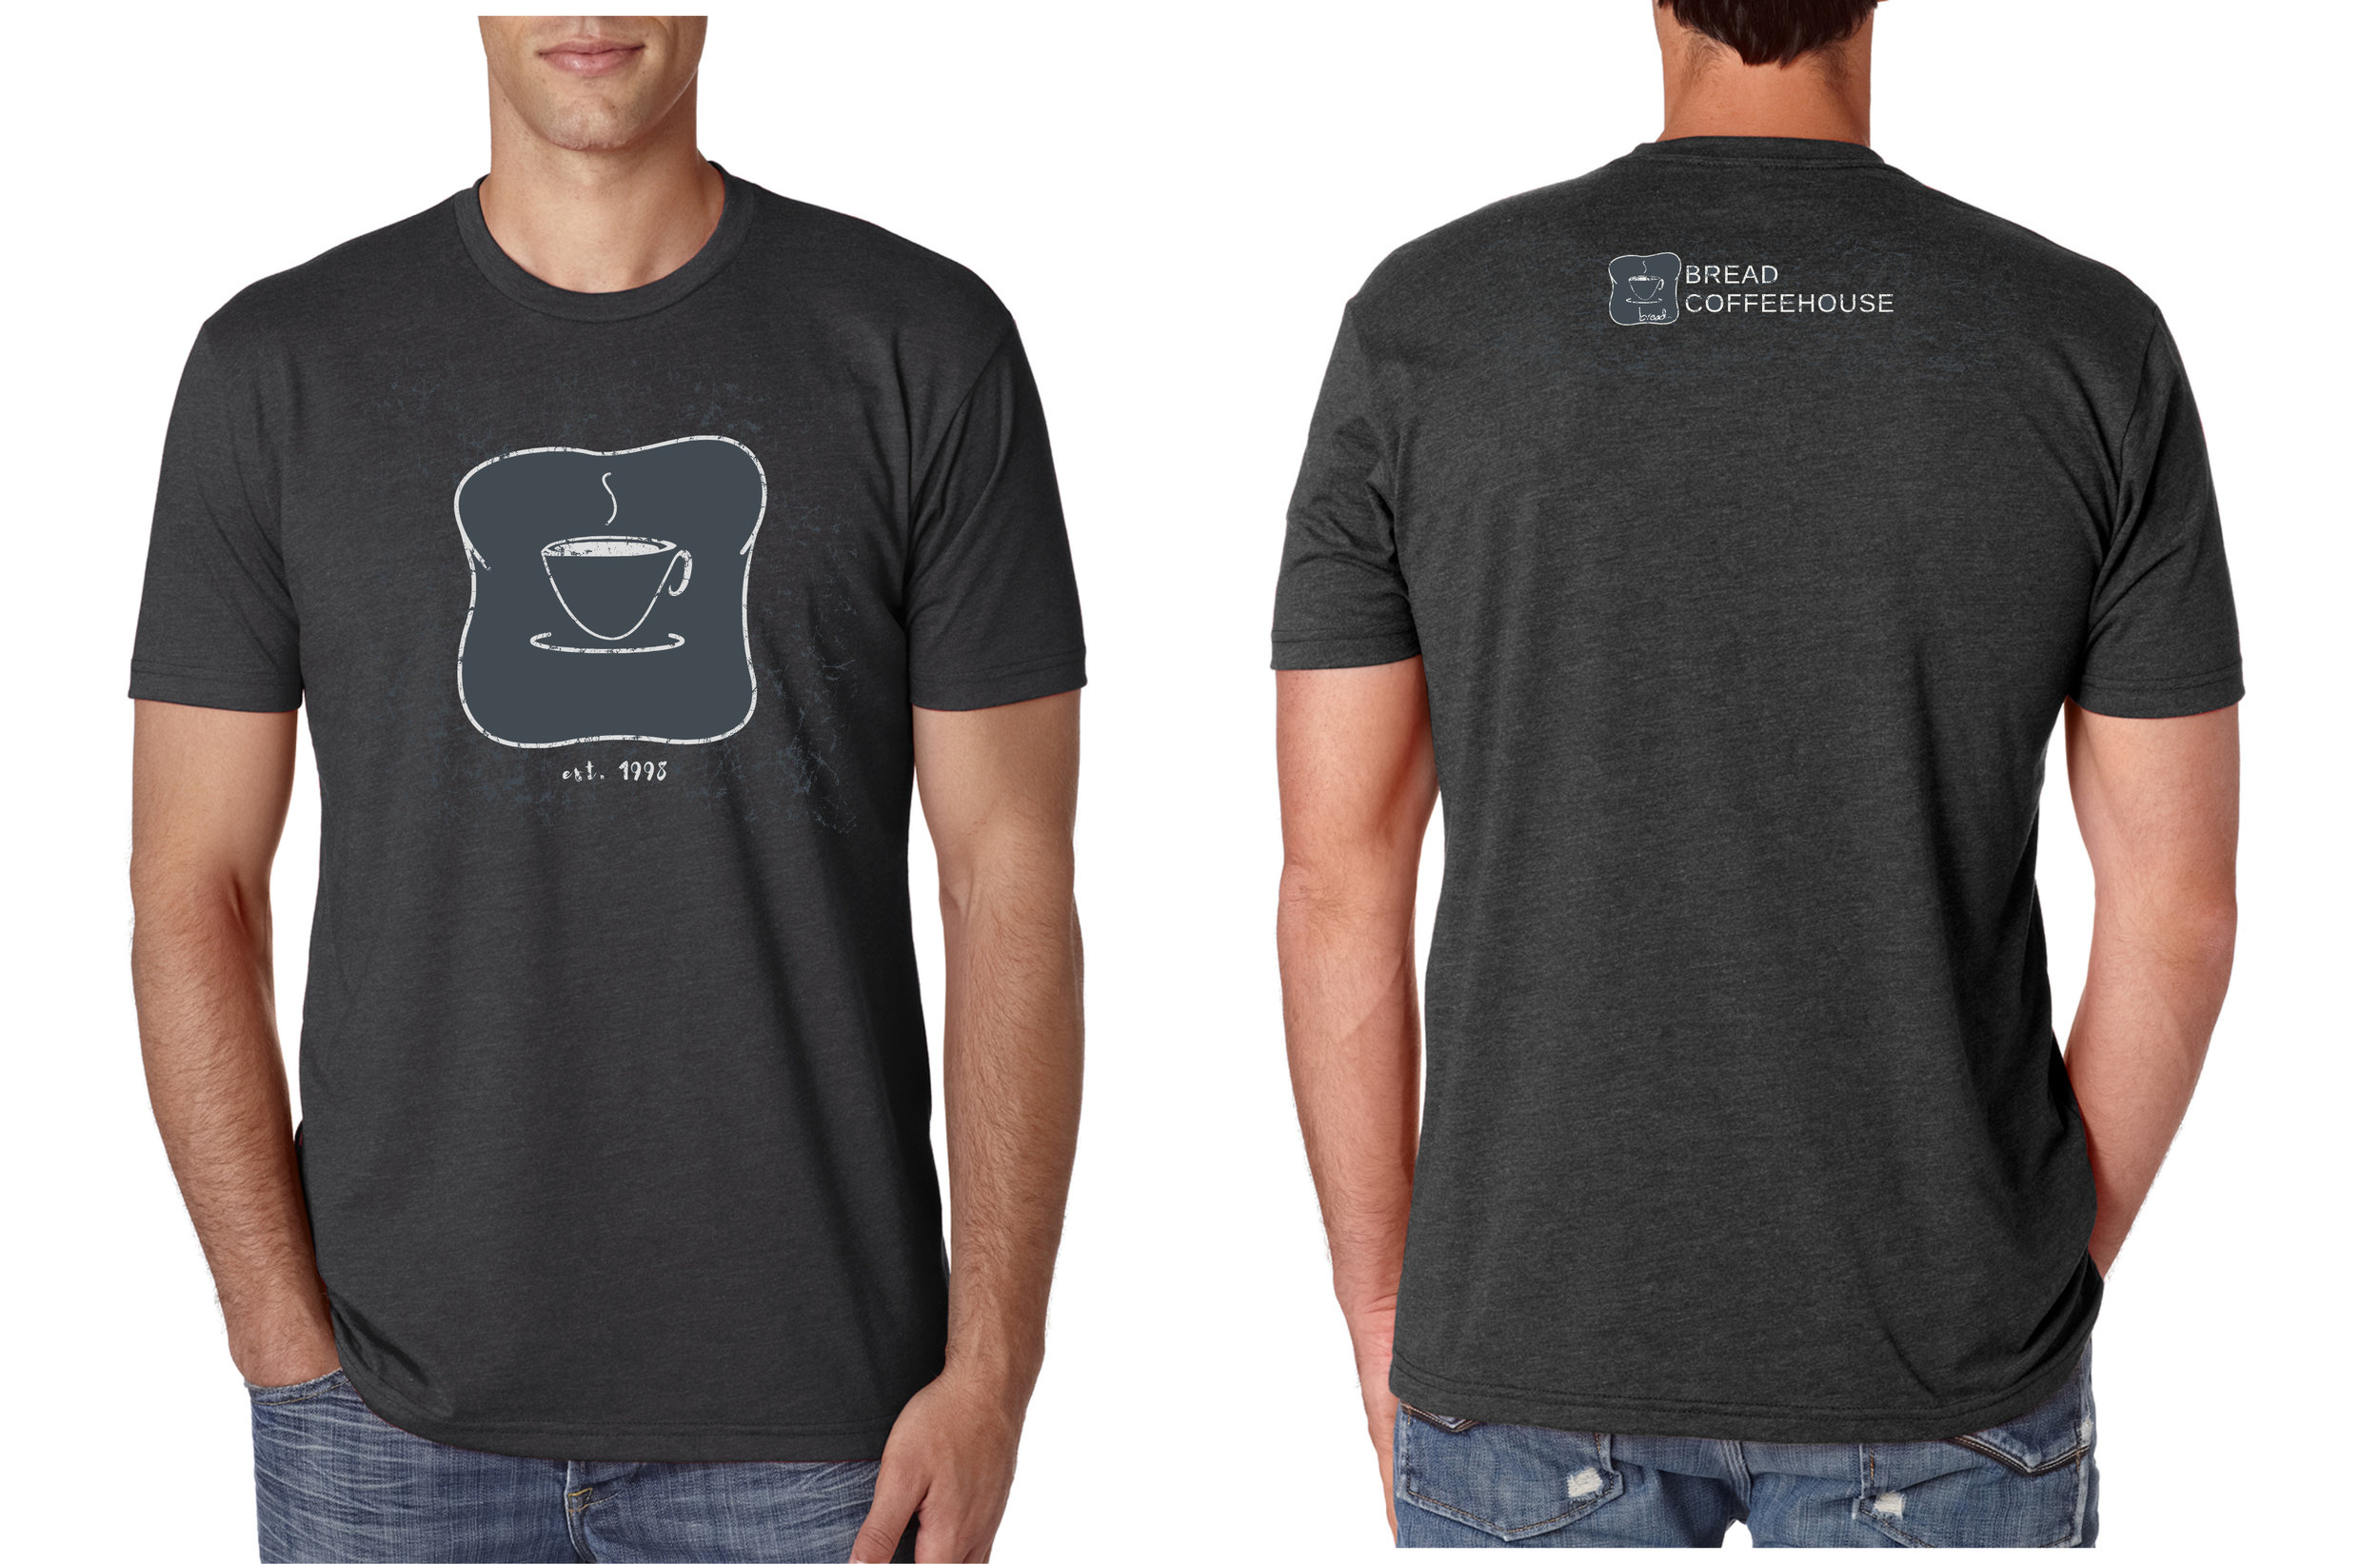 $18 Donation - These fancy t-shirts are brand new this year. Make sure you include your shirt size when you complete your donation via the PayPal link below.